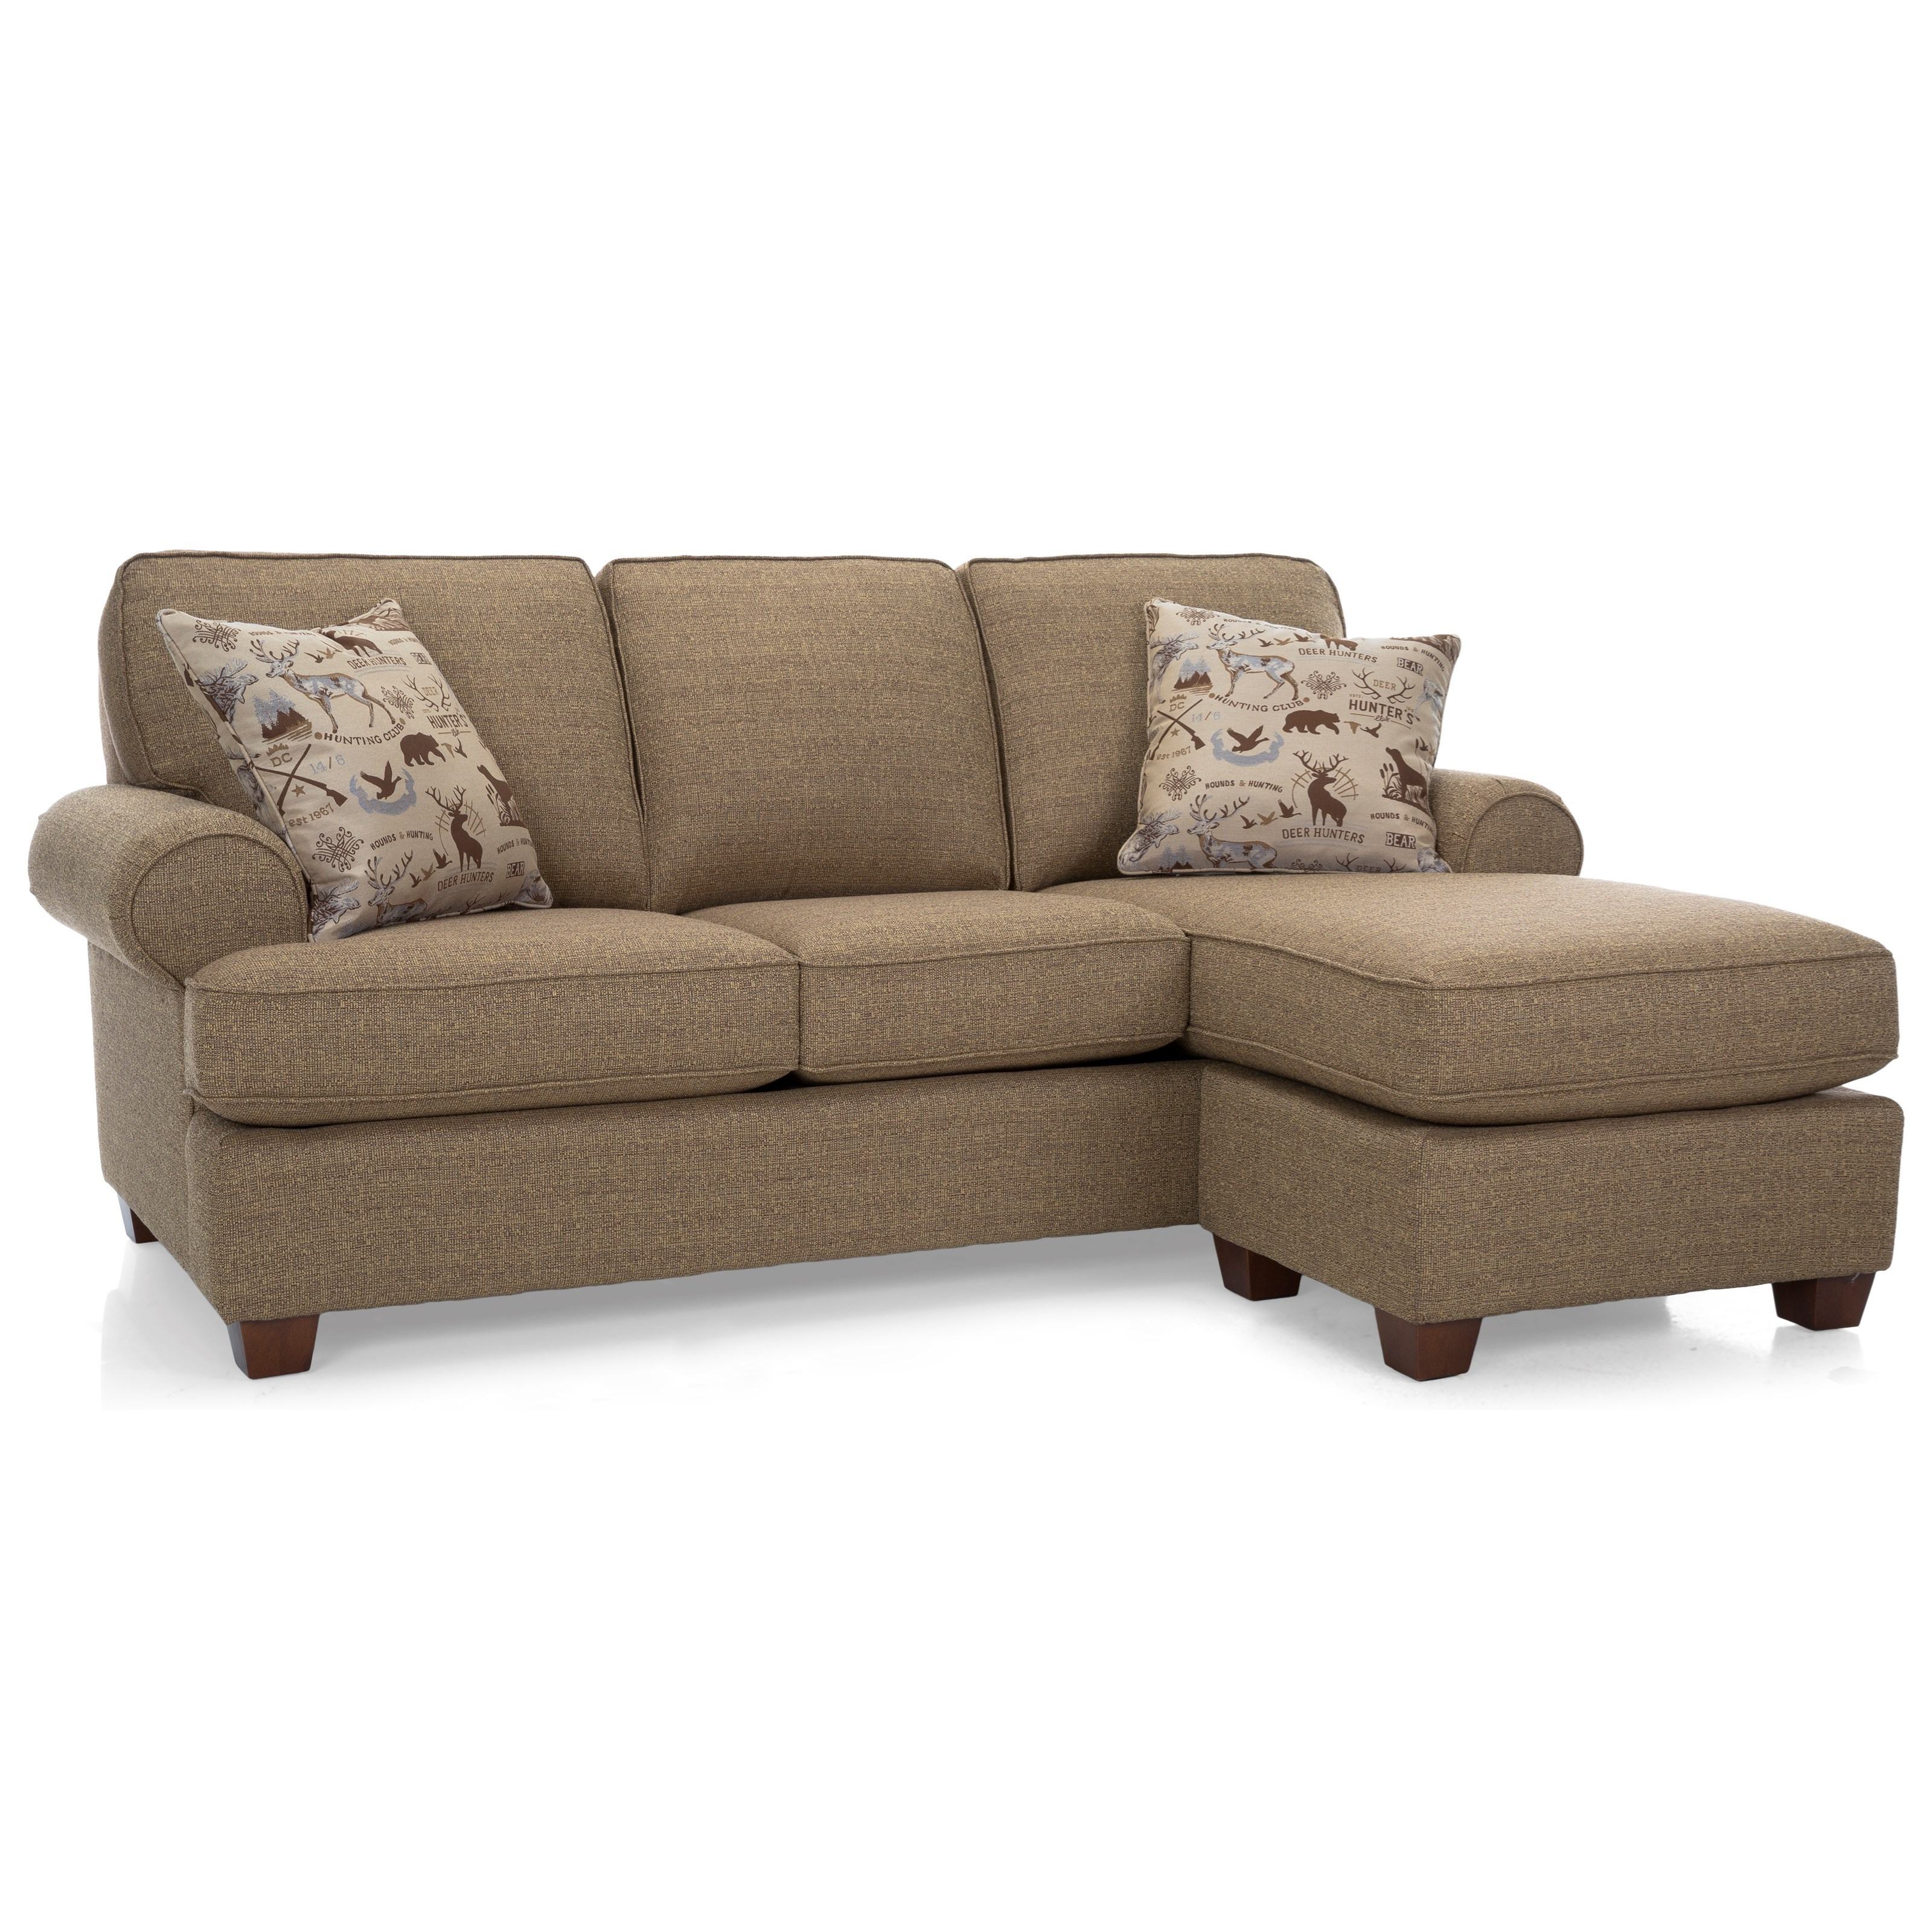 2285 Sofa with Chaise by Decor-Rest at Johnny Janosik